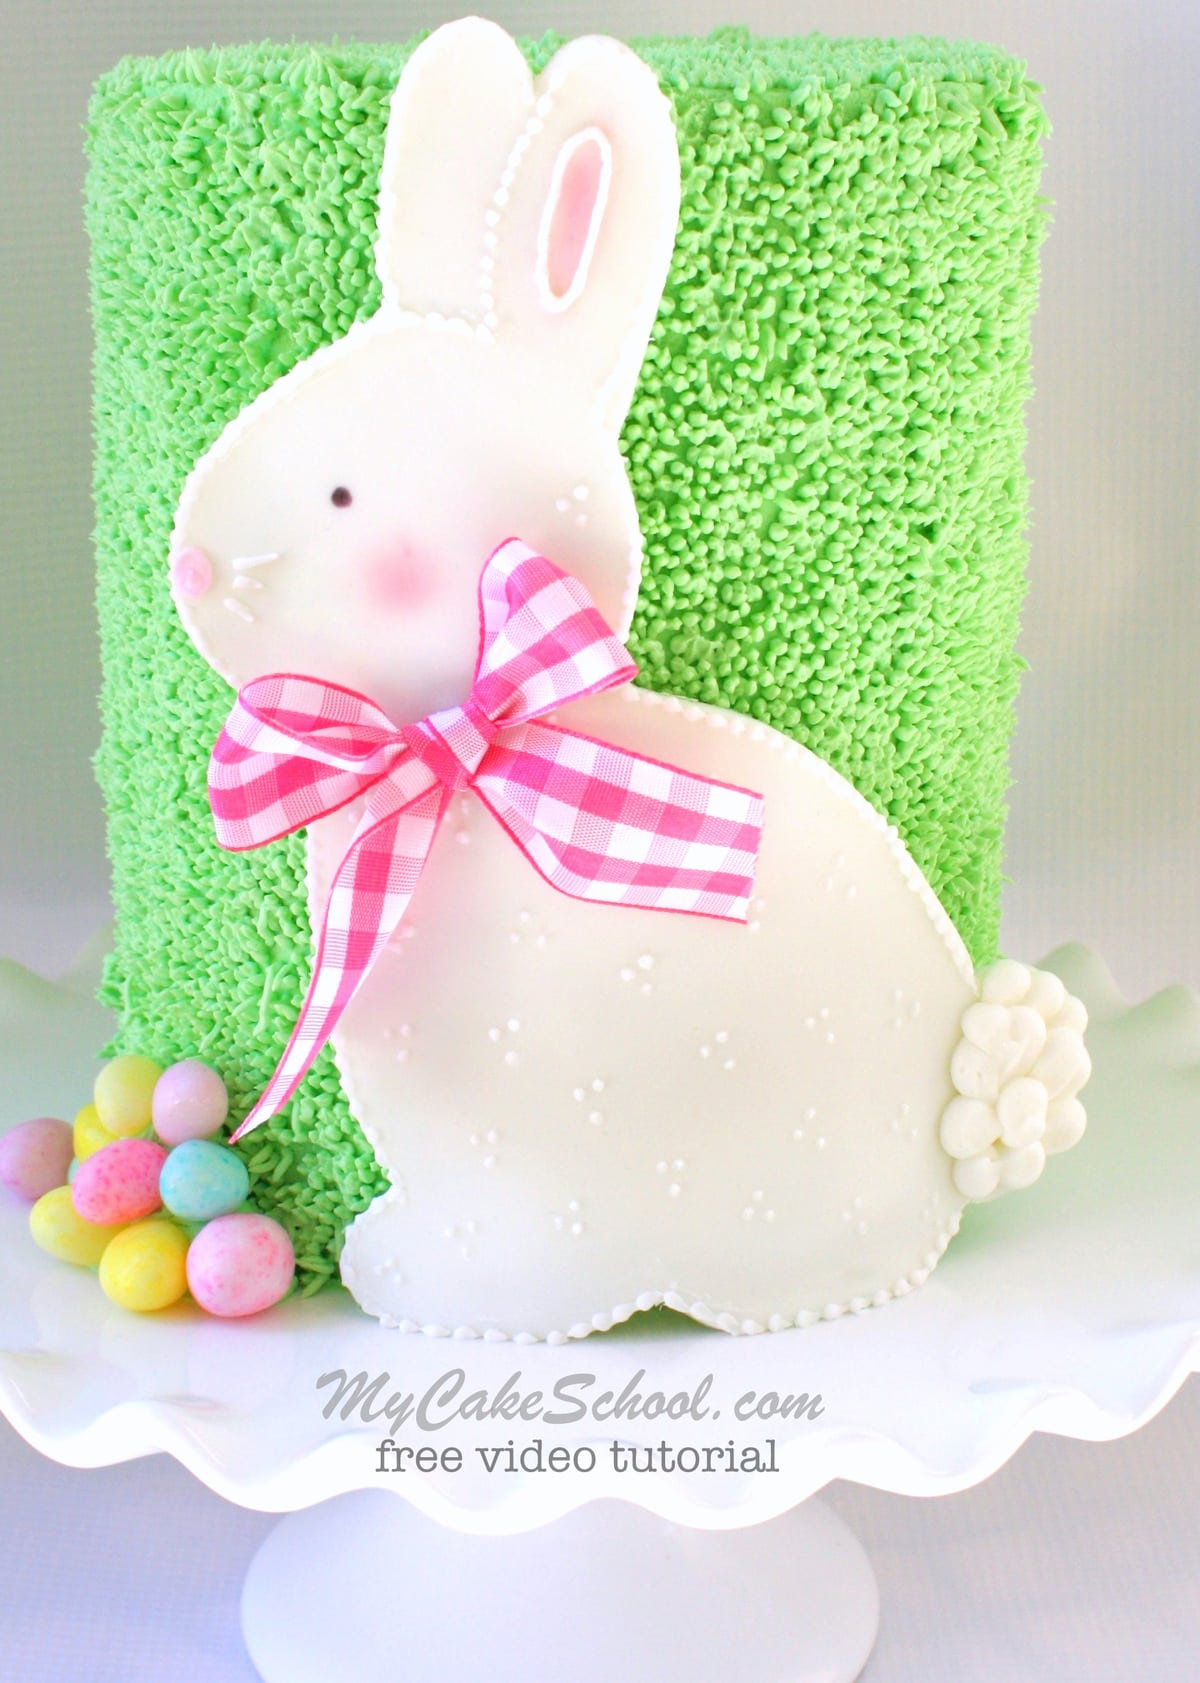 Roundup of Springtime and Easter Cakes! Sweet Bunny Cake Video by MyCakeSchool.com!